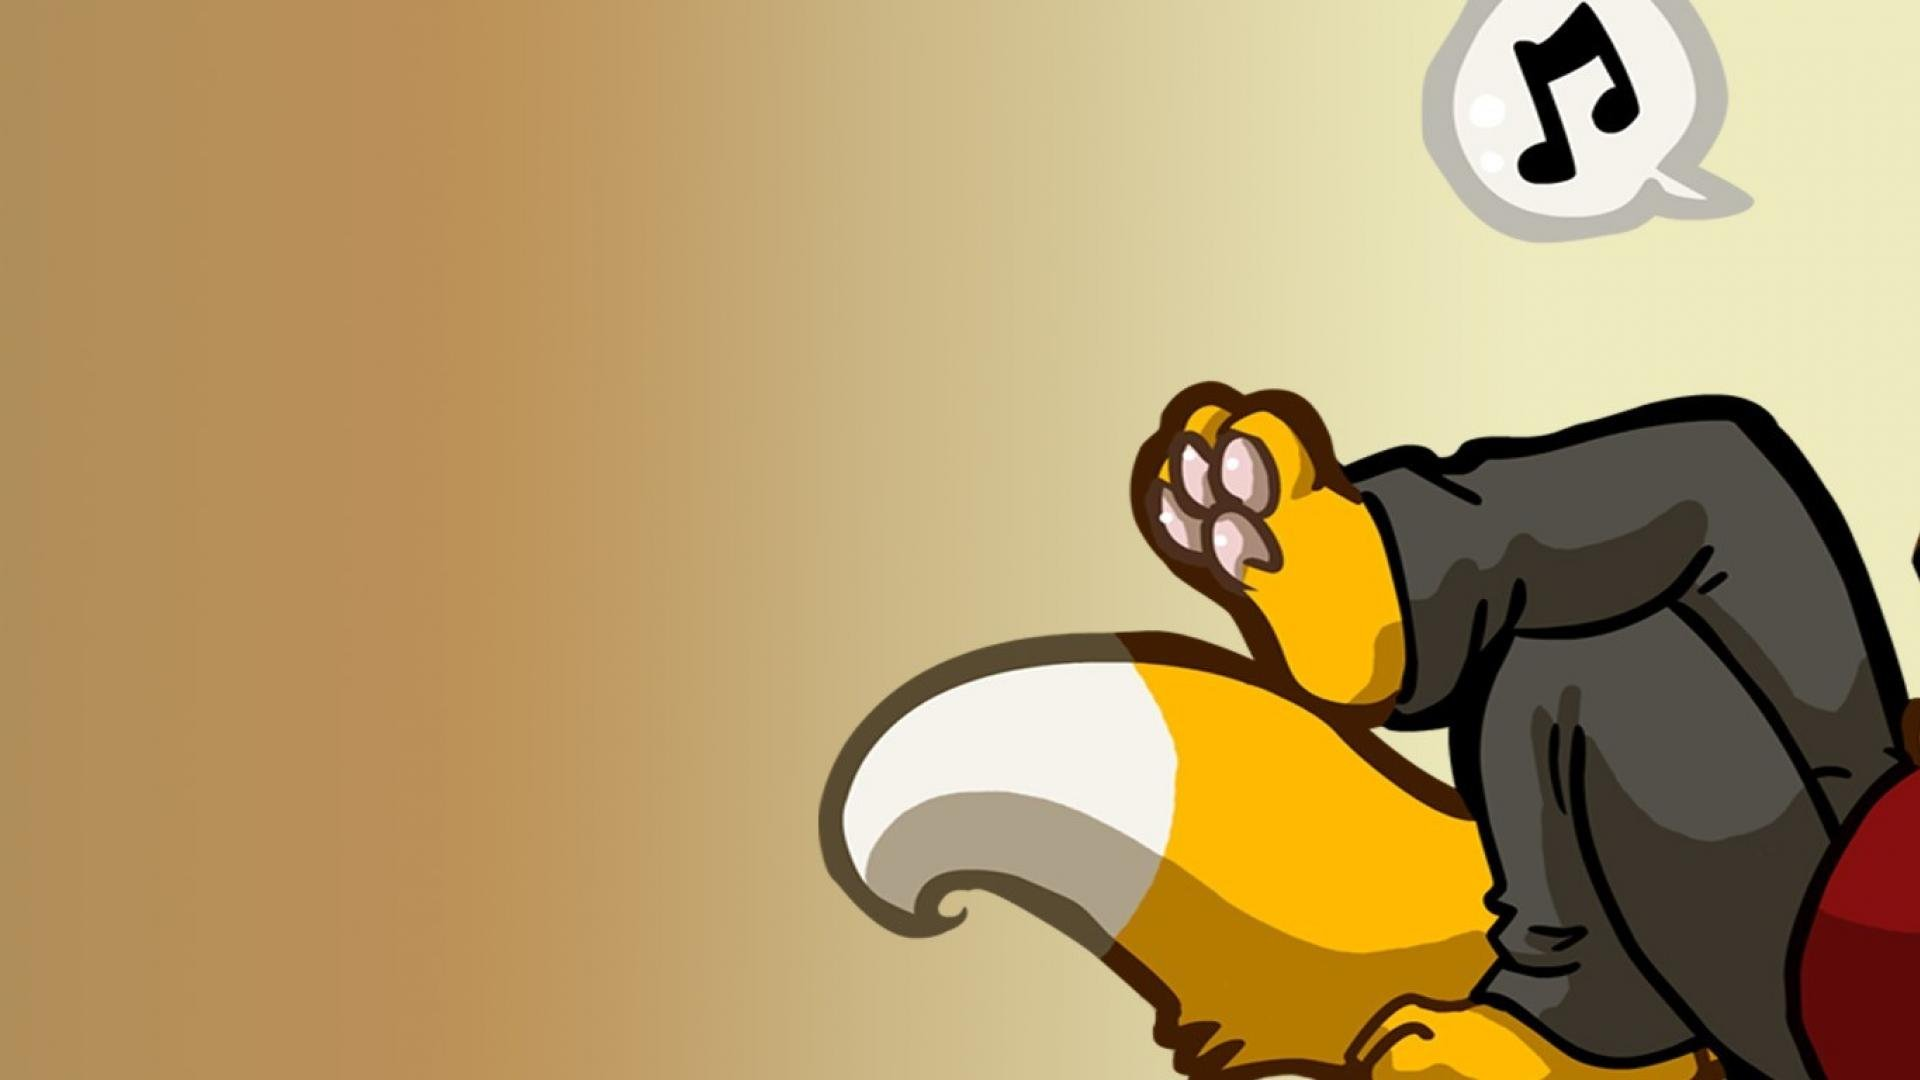 Furry Wallpaper Related Keywords amp Suggestions Furry 1920x1080